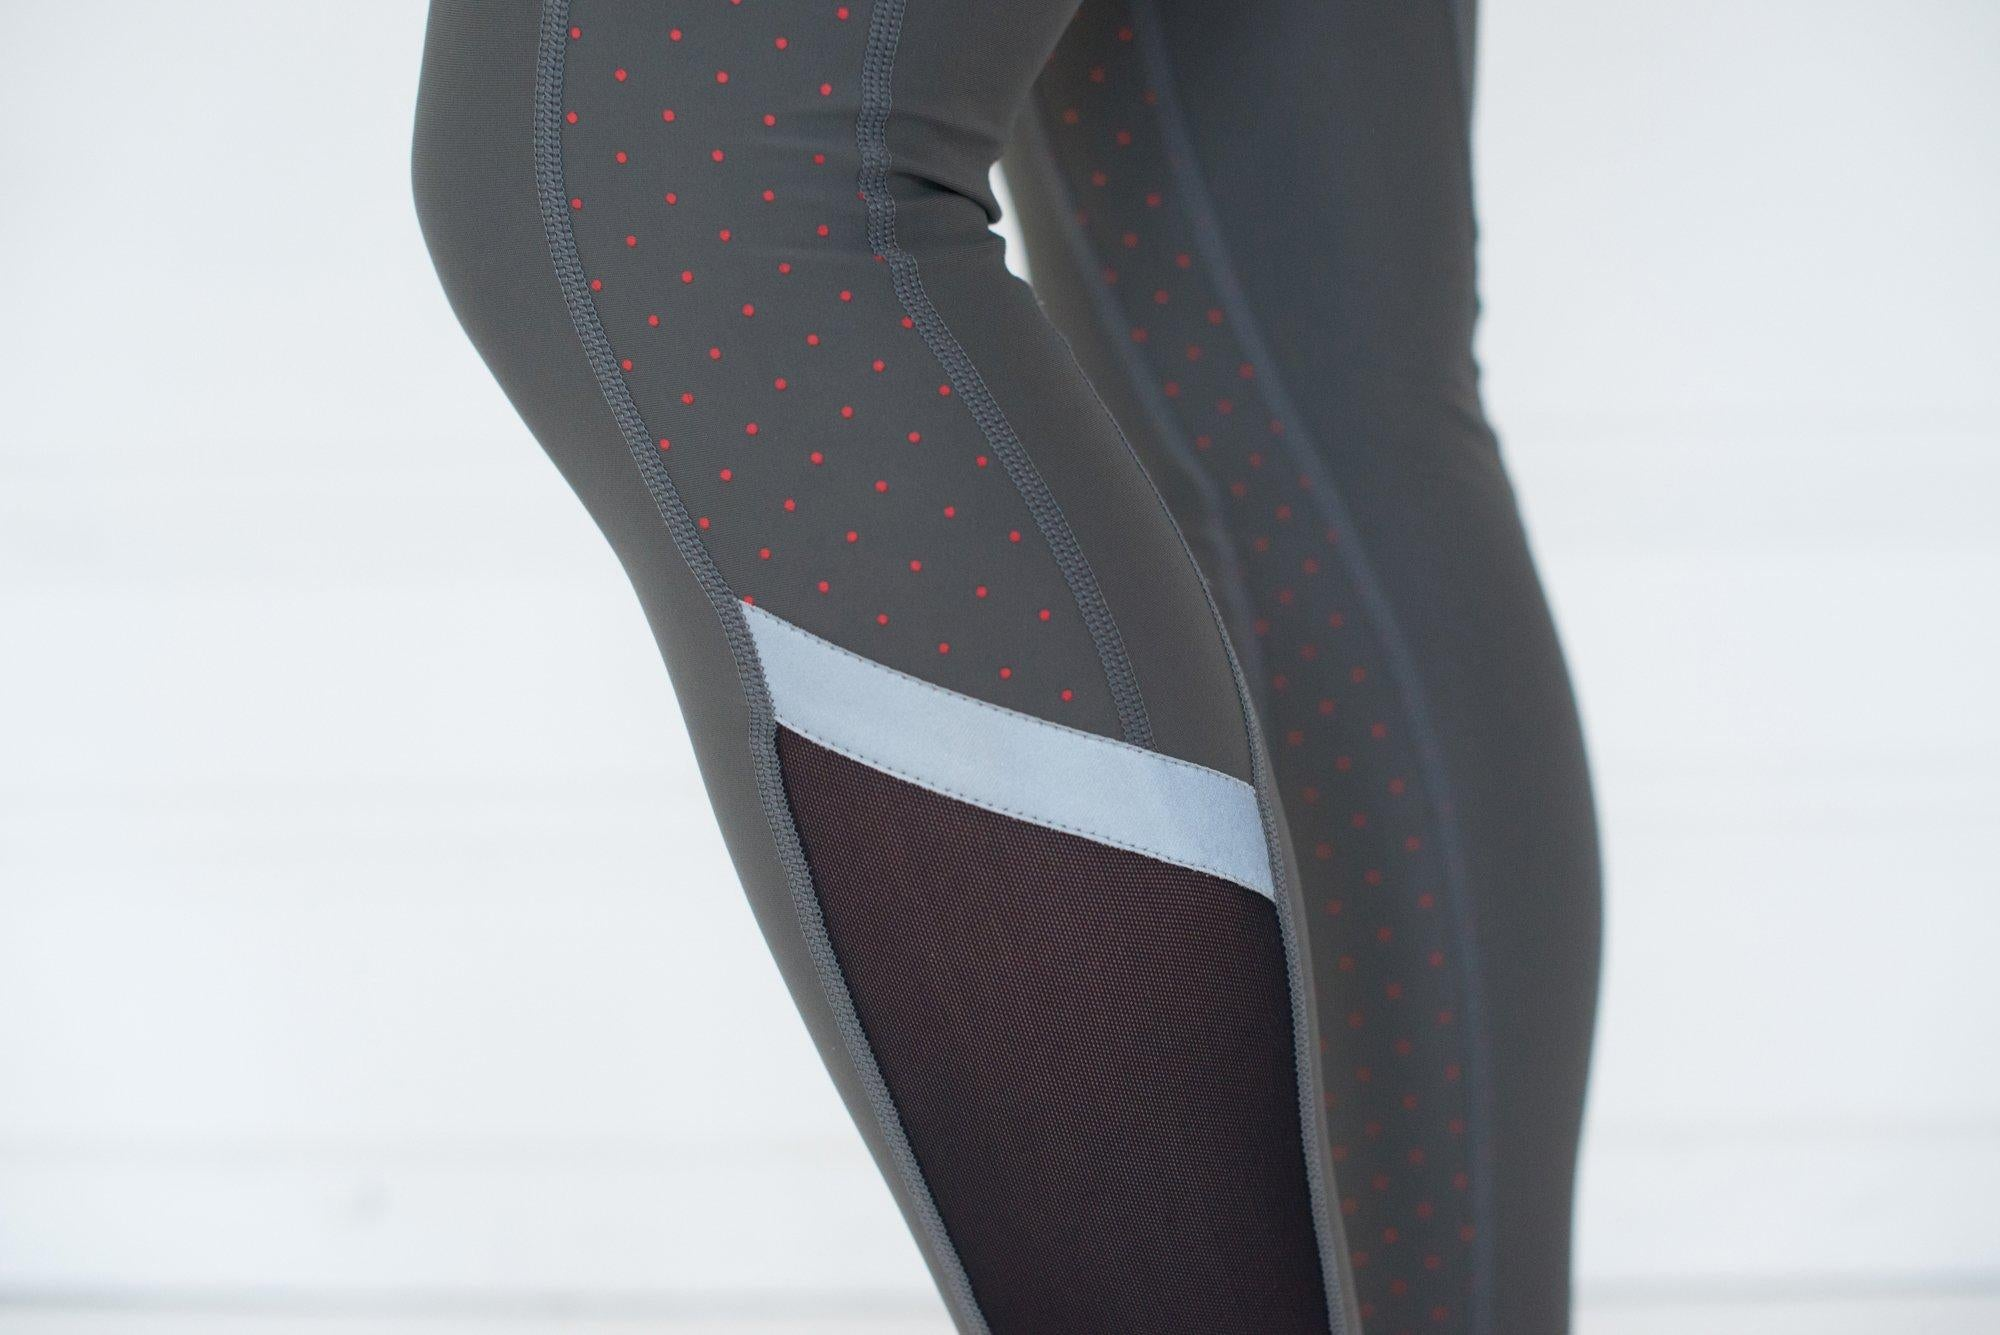 Women's Training tights - On Point Leggings - Iron Grey/ Tiger Polka Dot Print